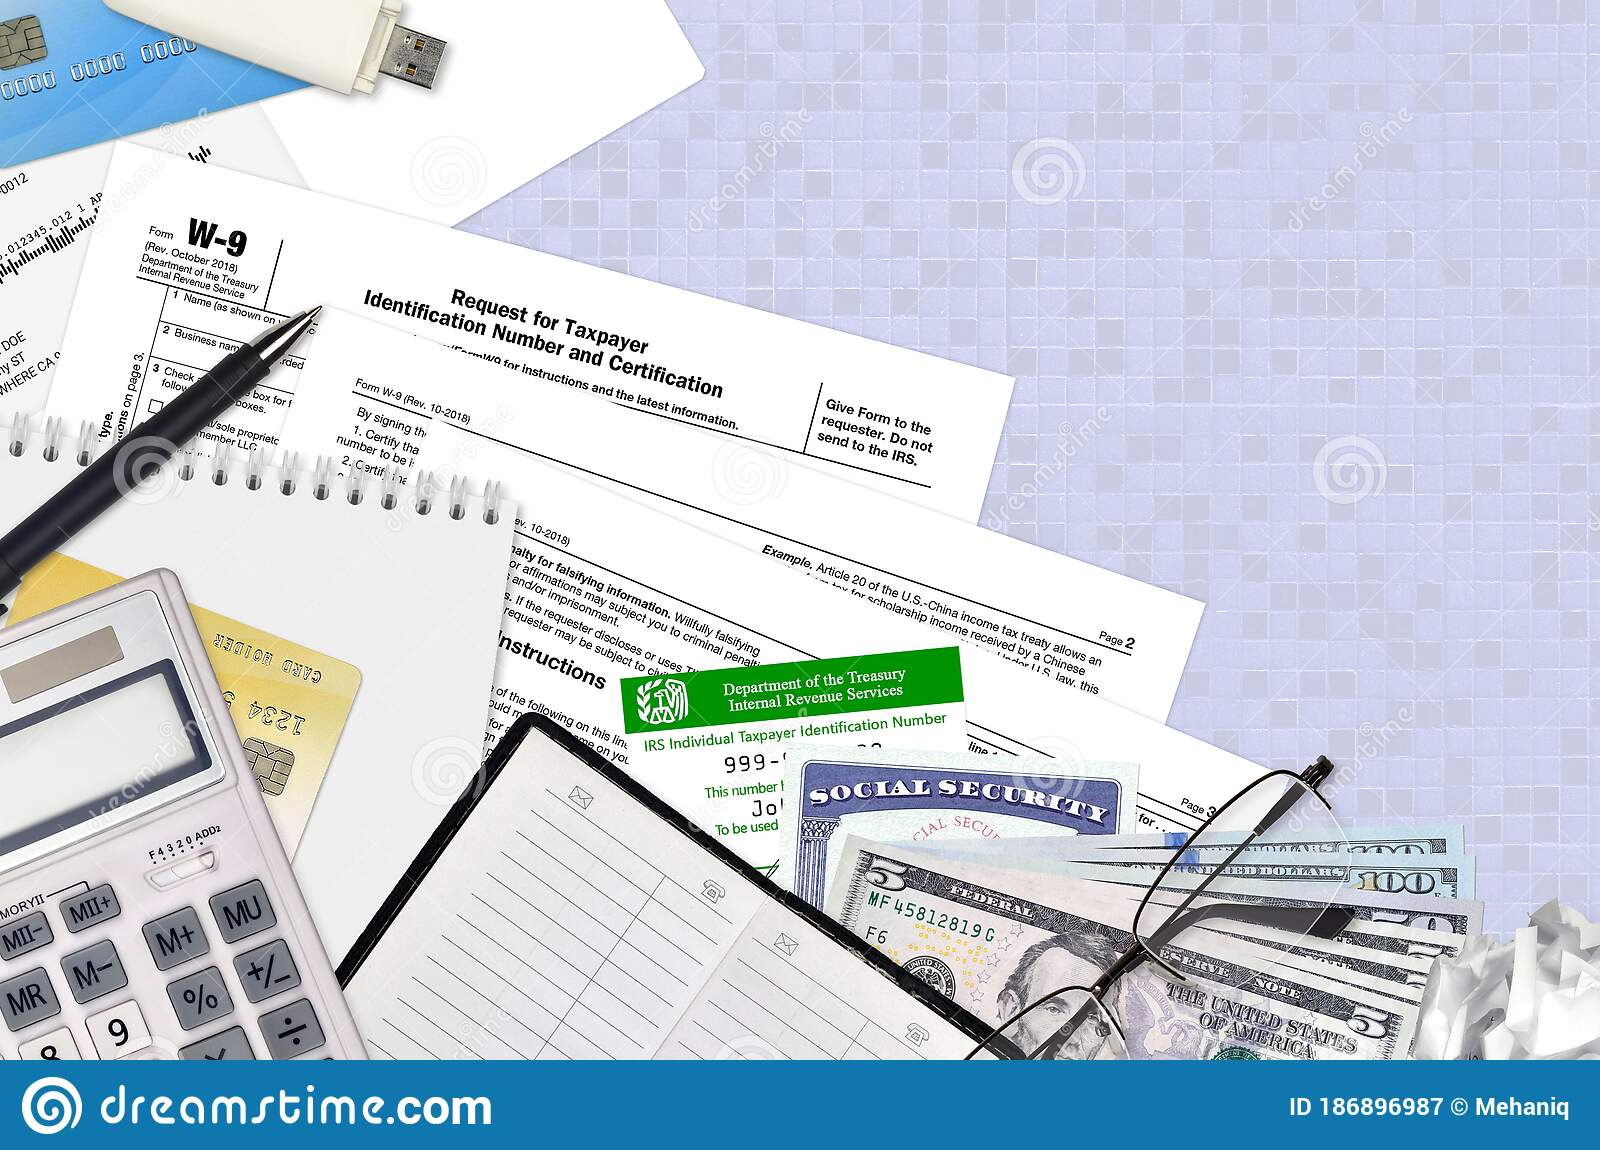 Irs Form W-9 Request For Taxpayer Identification Number And in Form W-9 2021